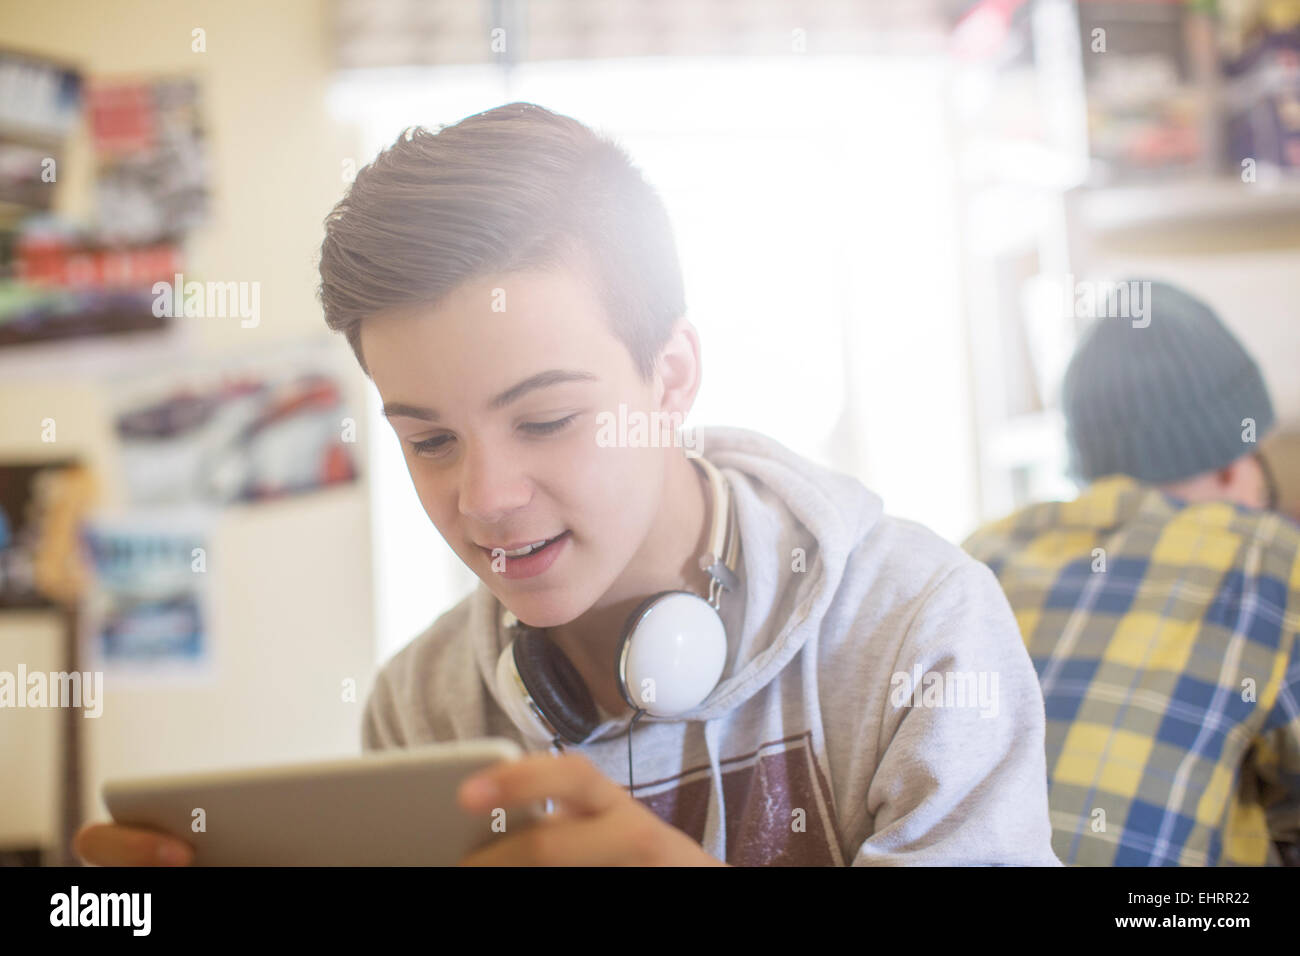 Two teenage boys sitting in room and using electronic devices - Stock Image